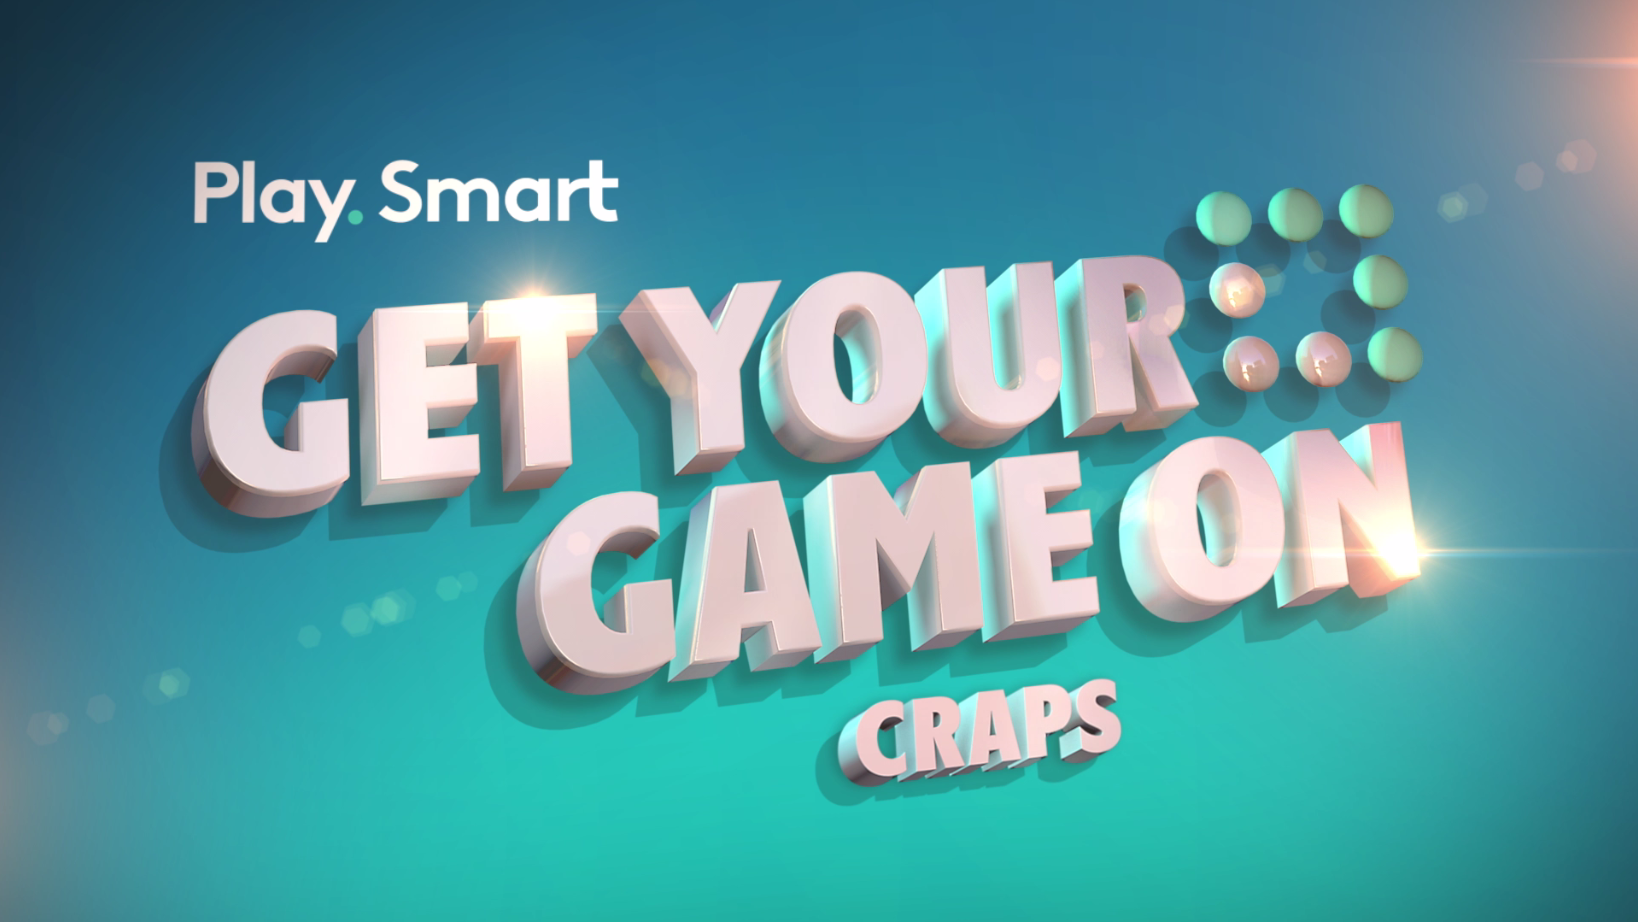 Get your game on craps